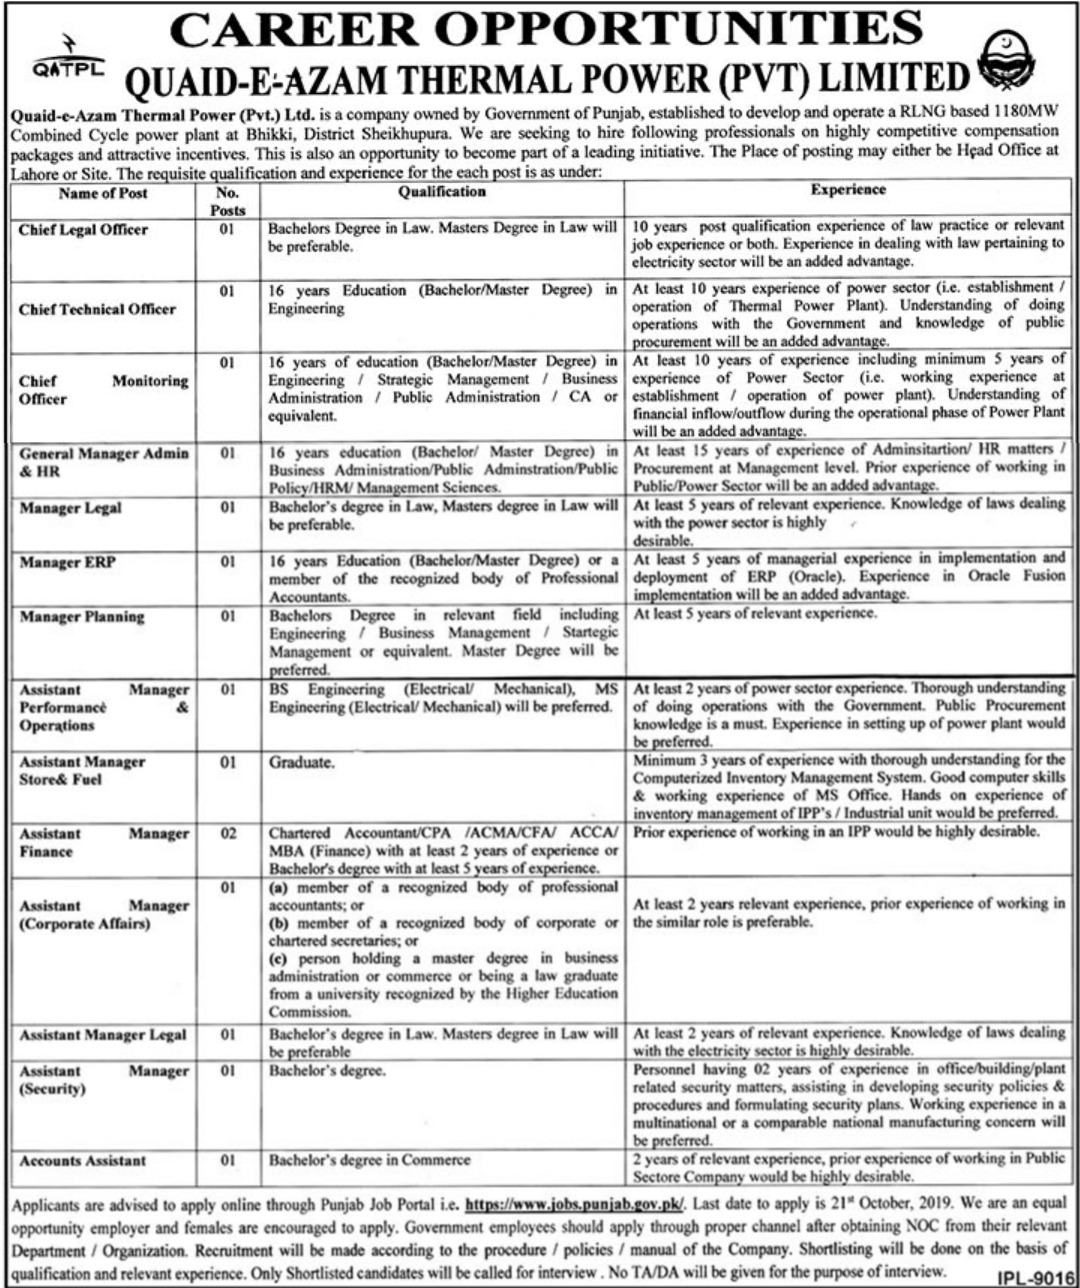 Quaid-e-Azam Thermal Power Pvt Limited Jobs 2019